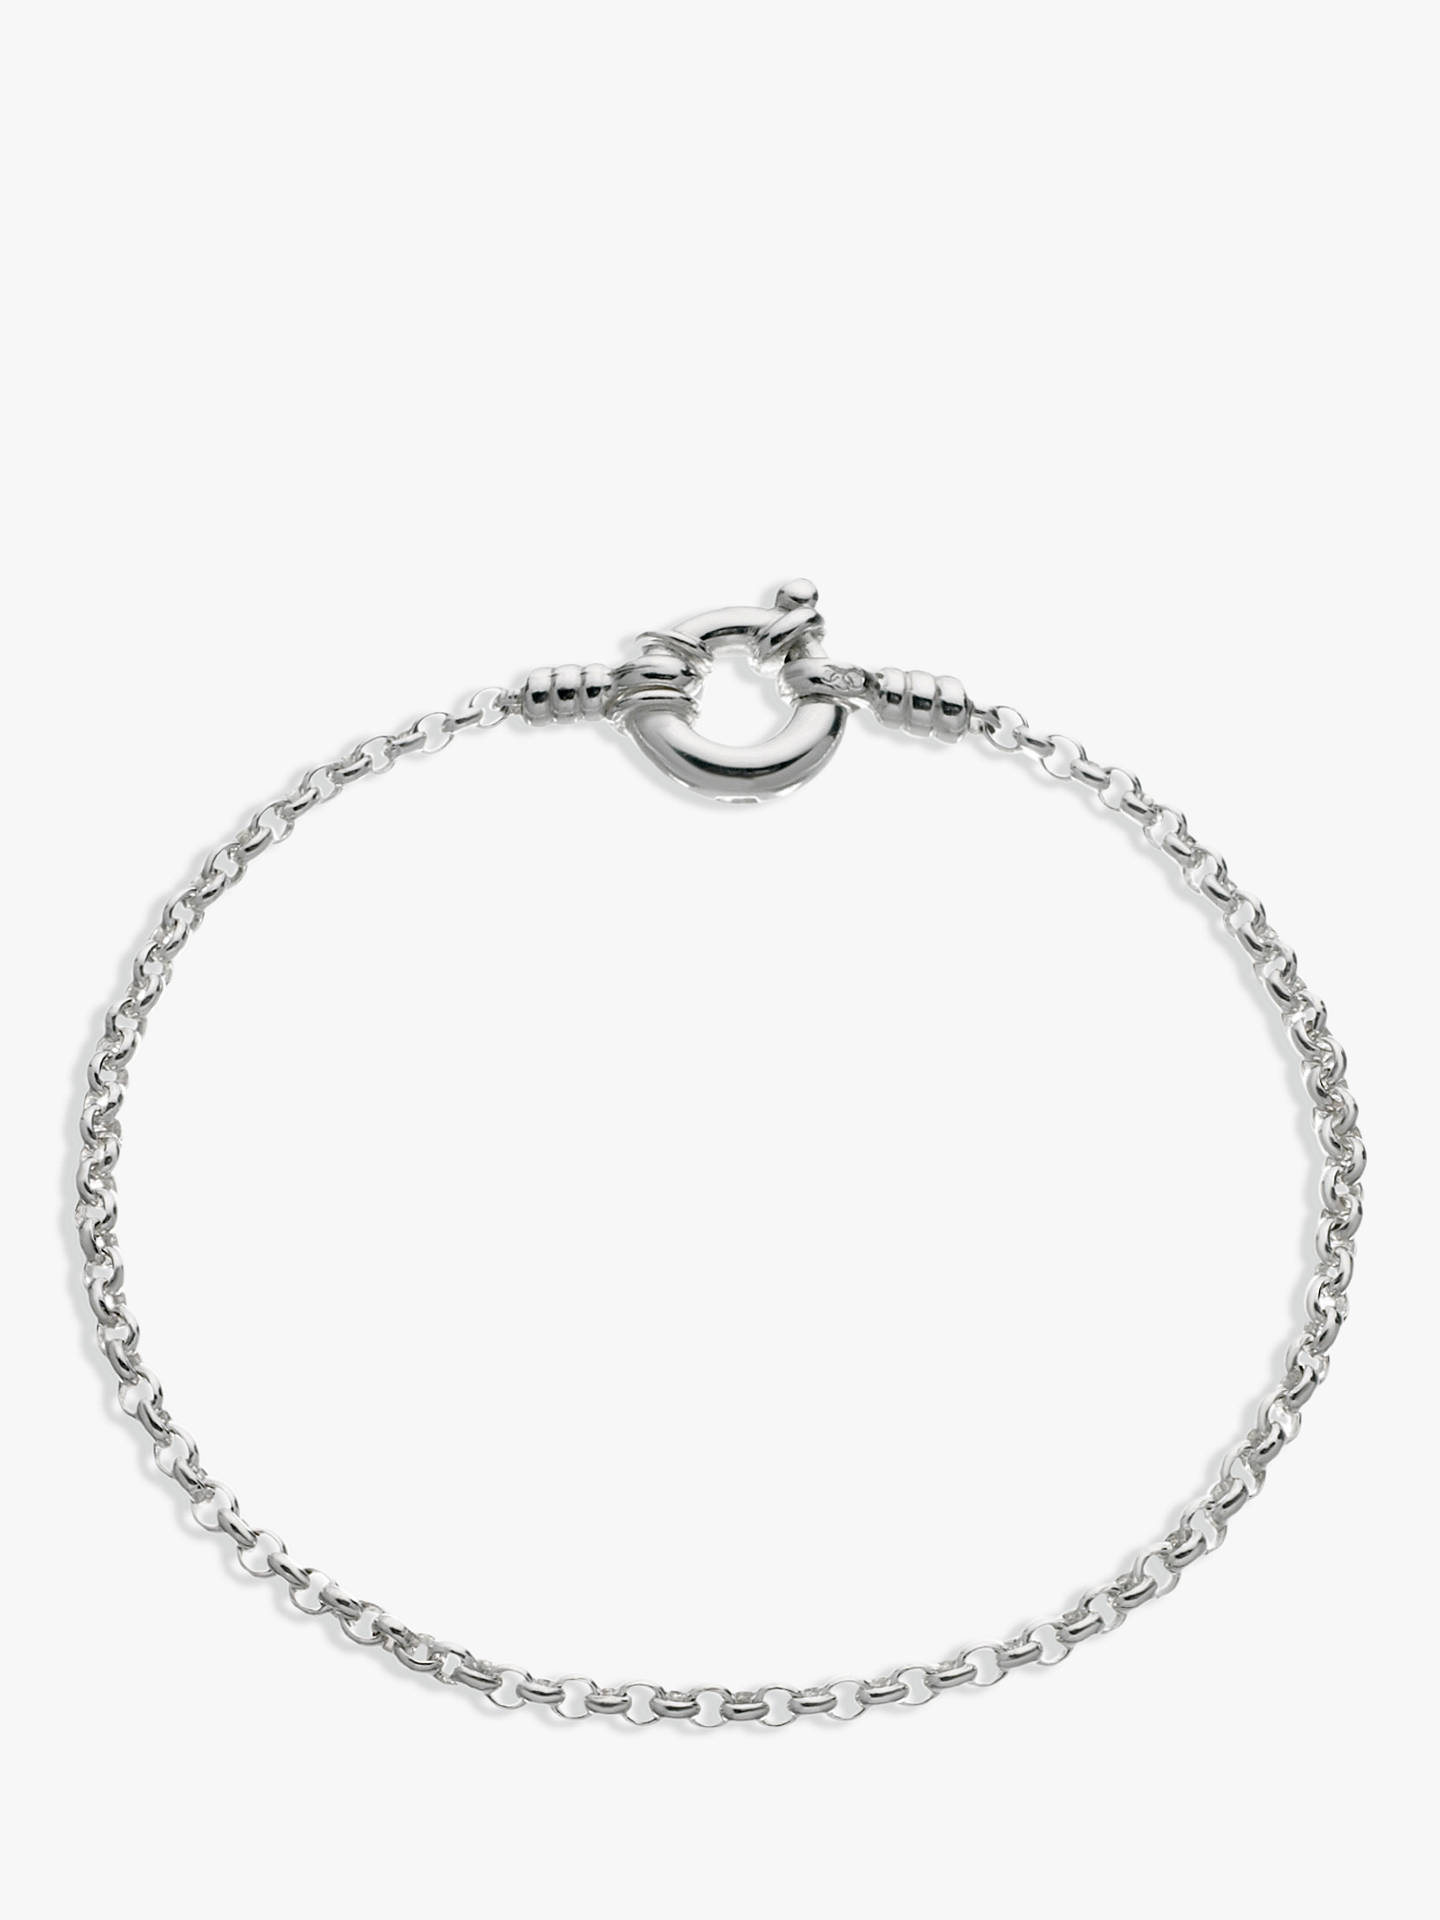 BuyLinks of London Mini Belcher Bracelet, Silver Online at johnlewis.com